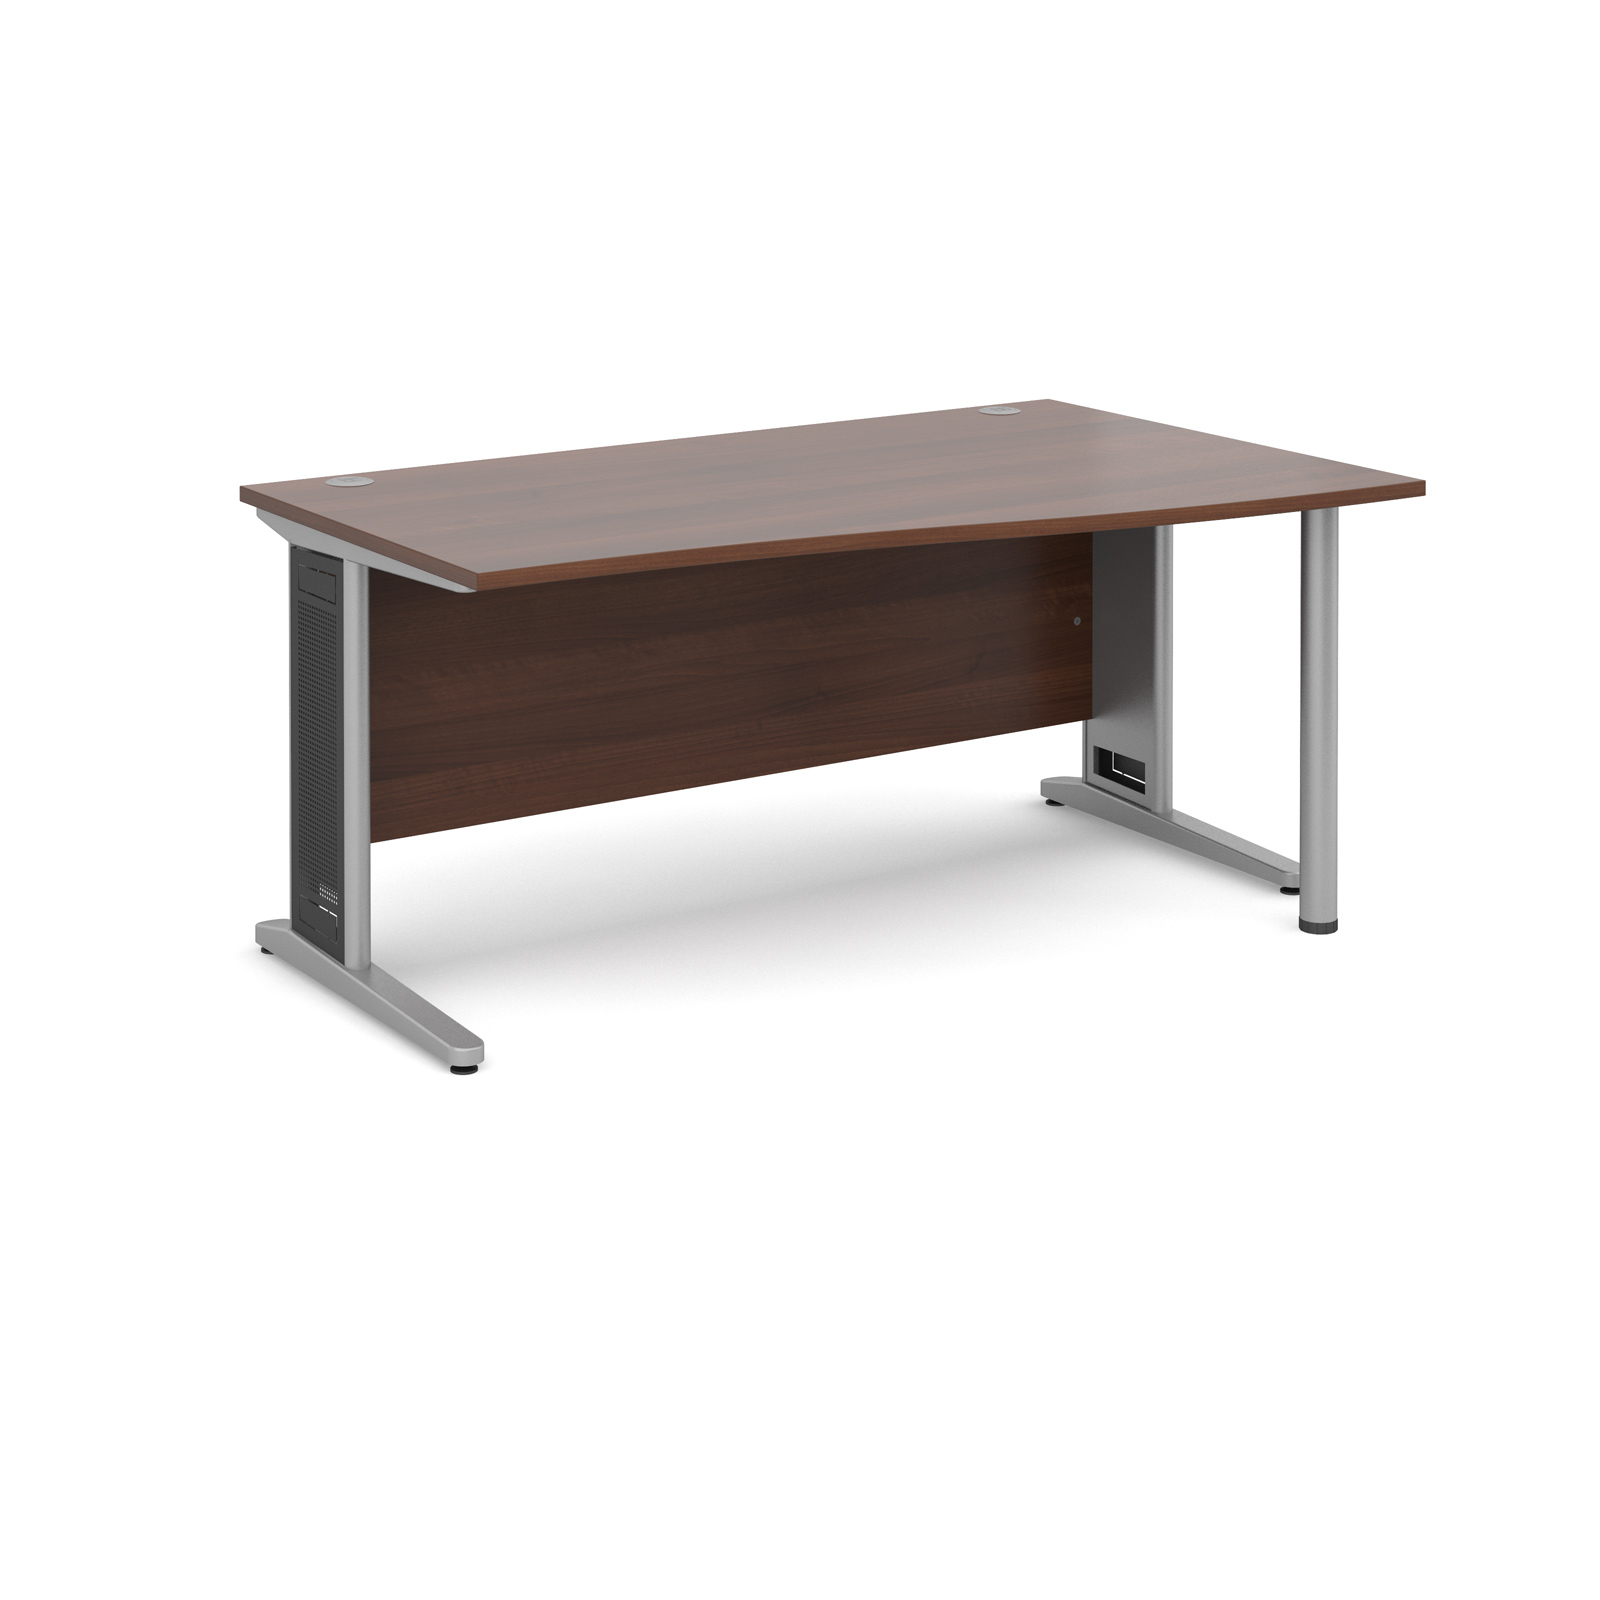 Largo right hand wave desk 1600mm - silver cantilever frame with removable grill, walnut top